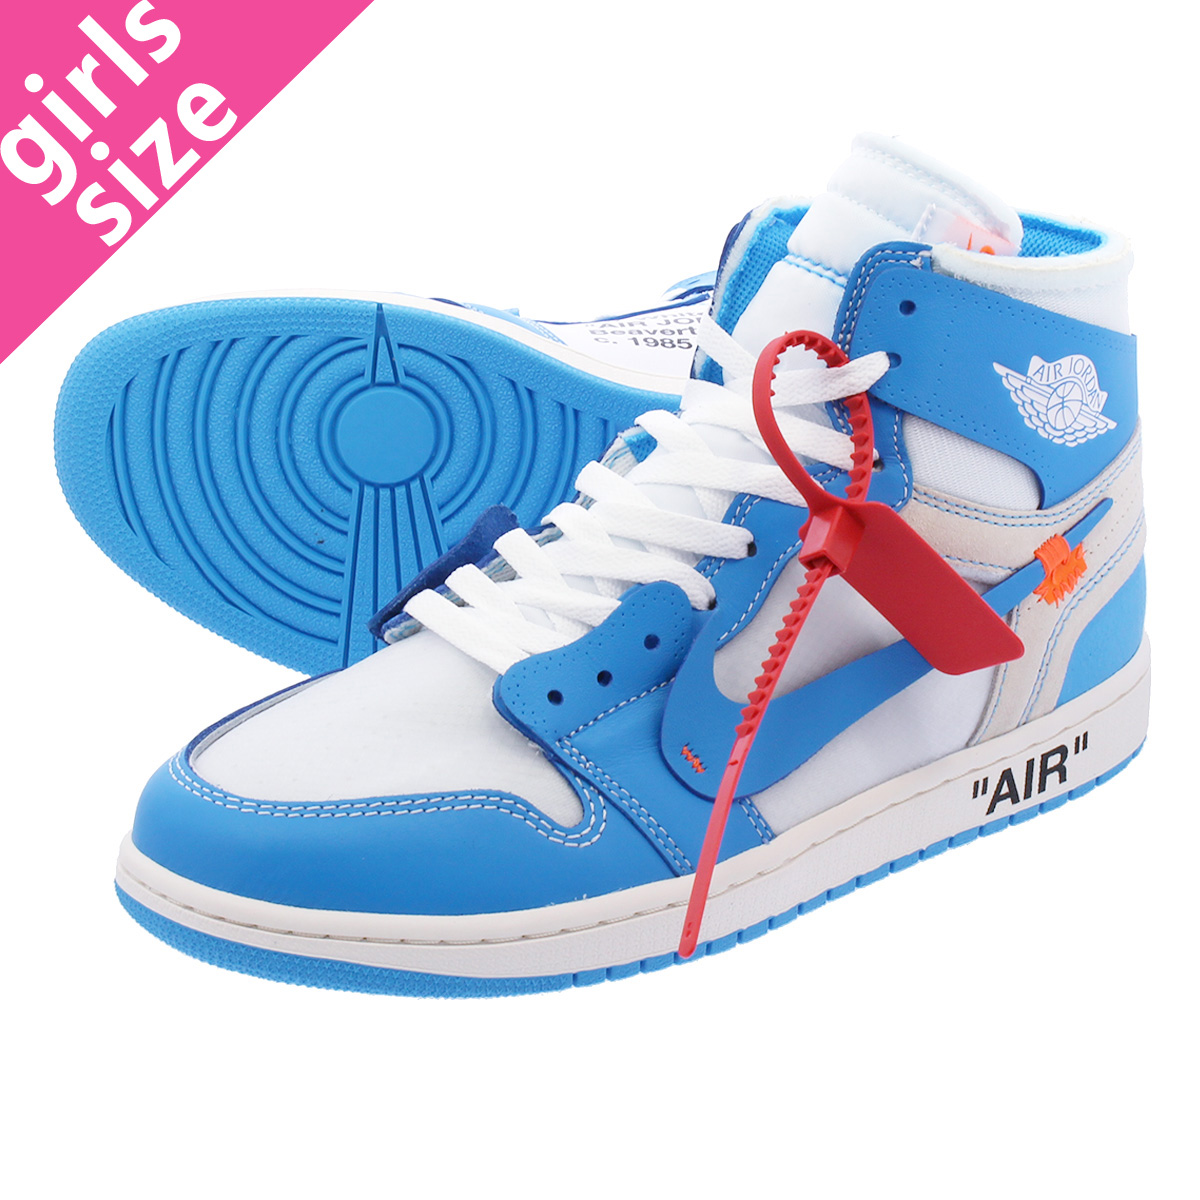 日本製 NIKE ジョーダン AIR JORDAN 1 NIKE RETRO HIGH NRG【OFF-WHITE POWDER】 ナイキ エア ジョーダン 1 レトロ ハイ NRG WHITE/CONE/DARK POWDER BLUEaq0818-148, 清風ハートピア:ae5a202d --- canoncity.azurewebsites.net